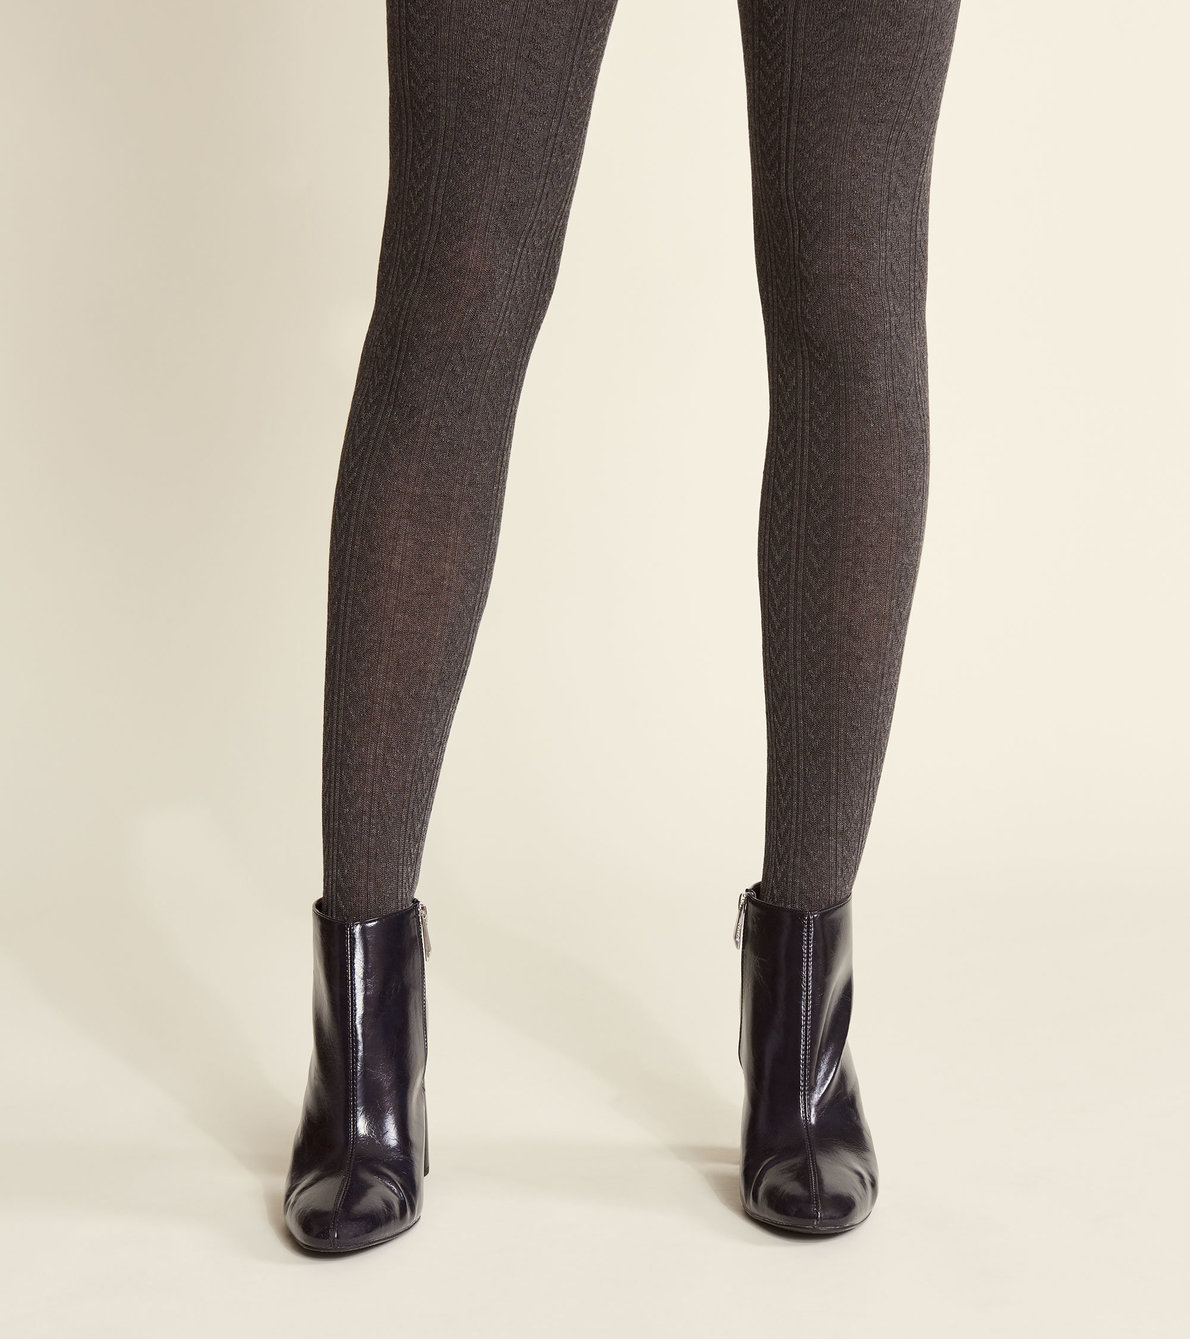 View larger image of Cable Knit Tights - Charcoal Melange